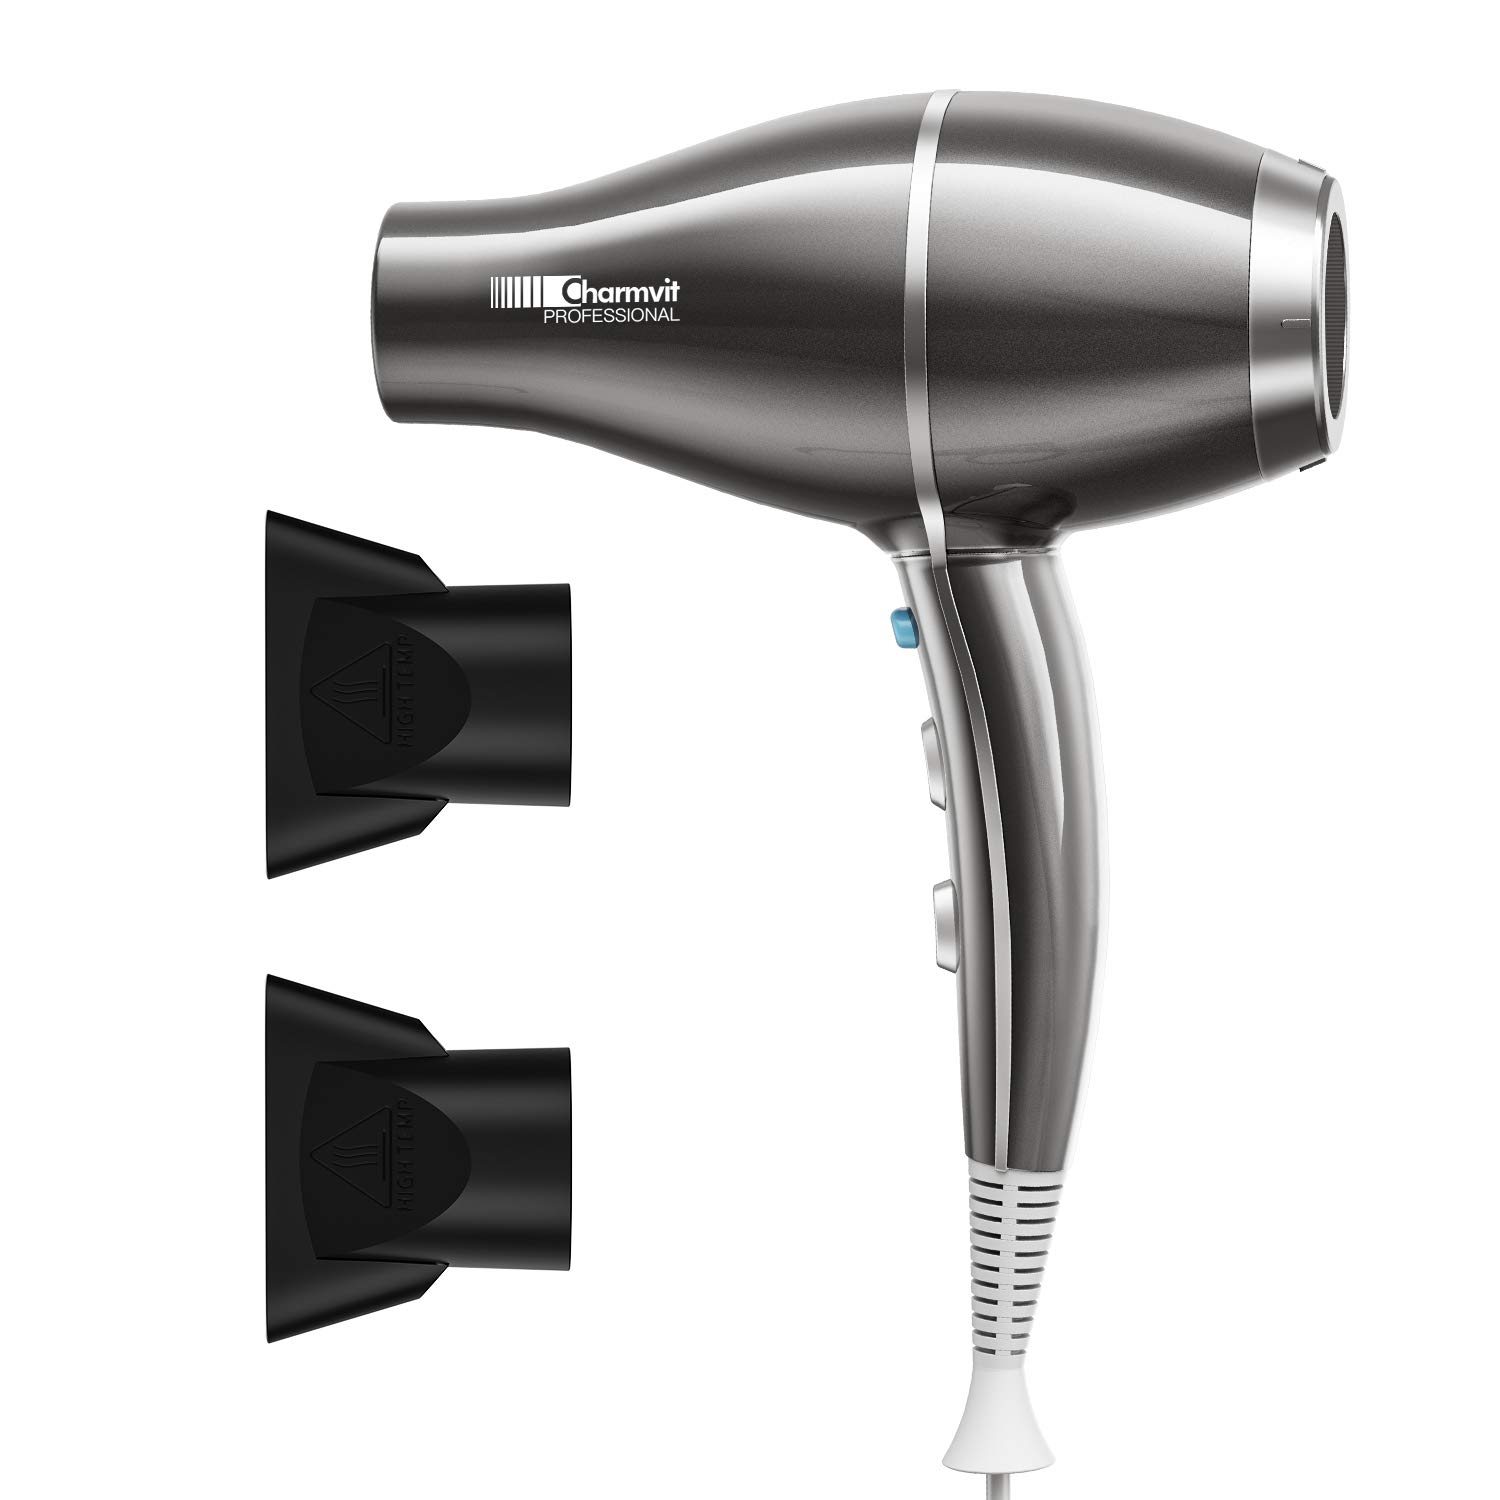 Professional Powerful 2000W Hair Dryer Negative Ion Blow Dryer, Fast Drying Low Noise Dryer with Nozzles, Constant Temperature for Smooth and Healthy Care, Silver Grey